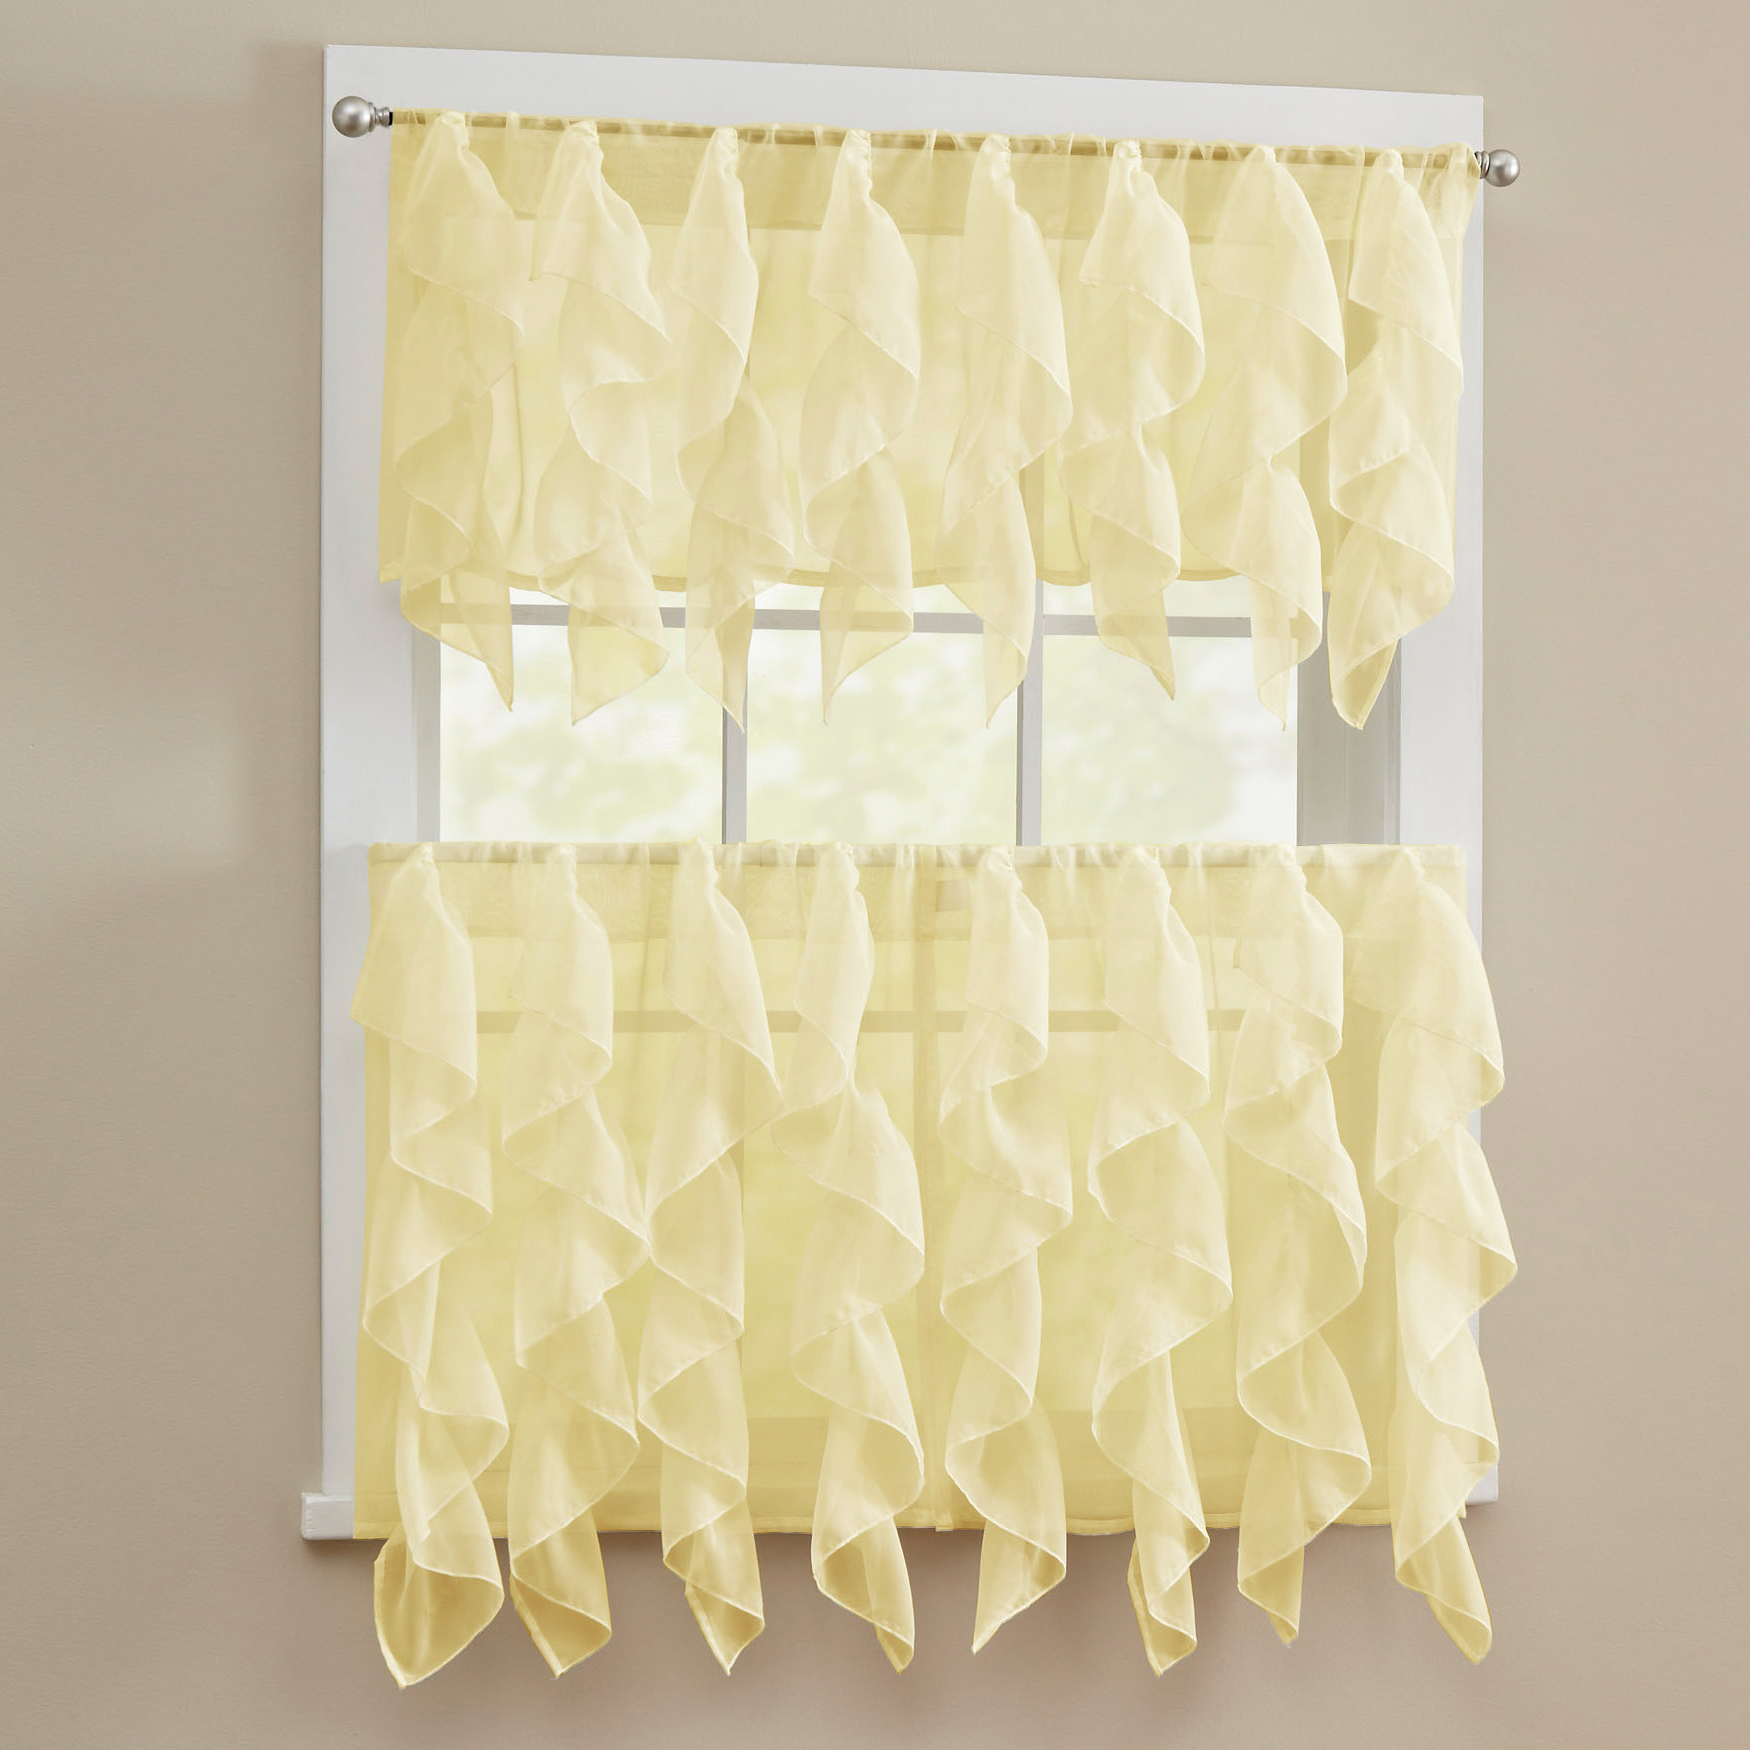 Details about Sheer Voile Vertical Ruffle Window Kitchen Curtain Tiers or  Valance Maize